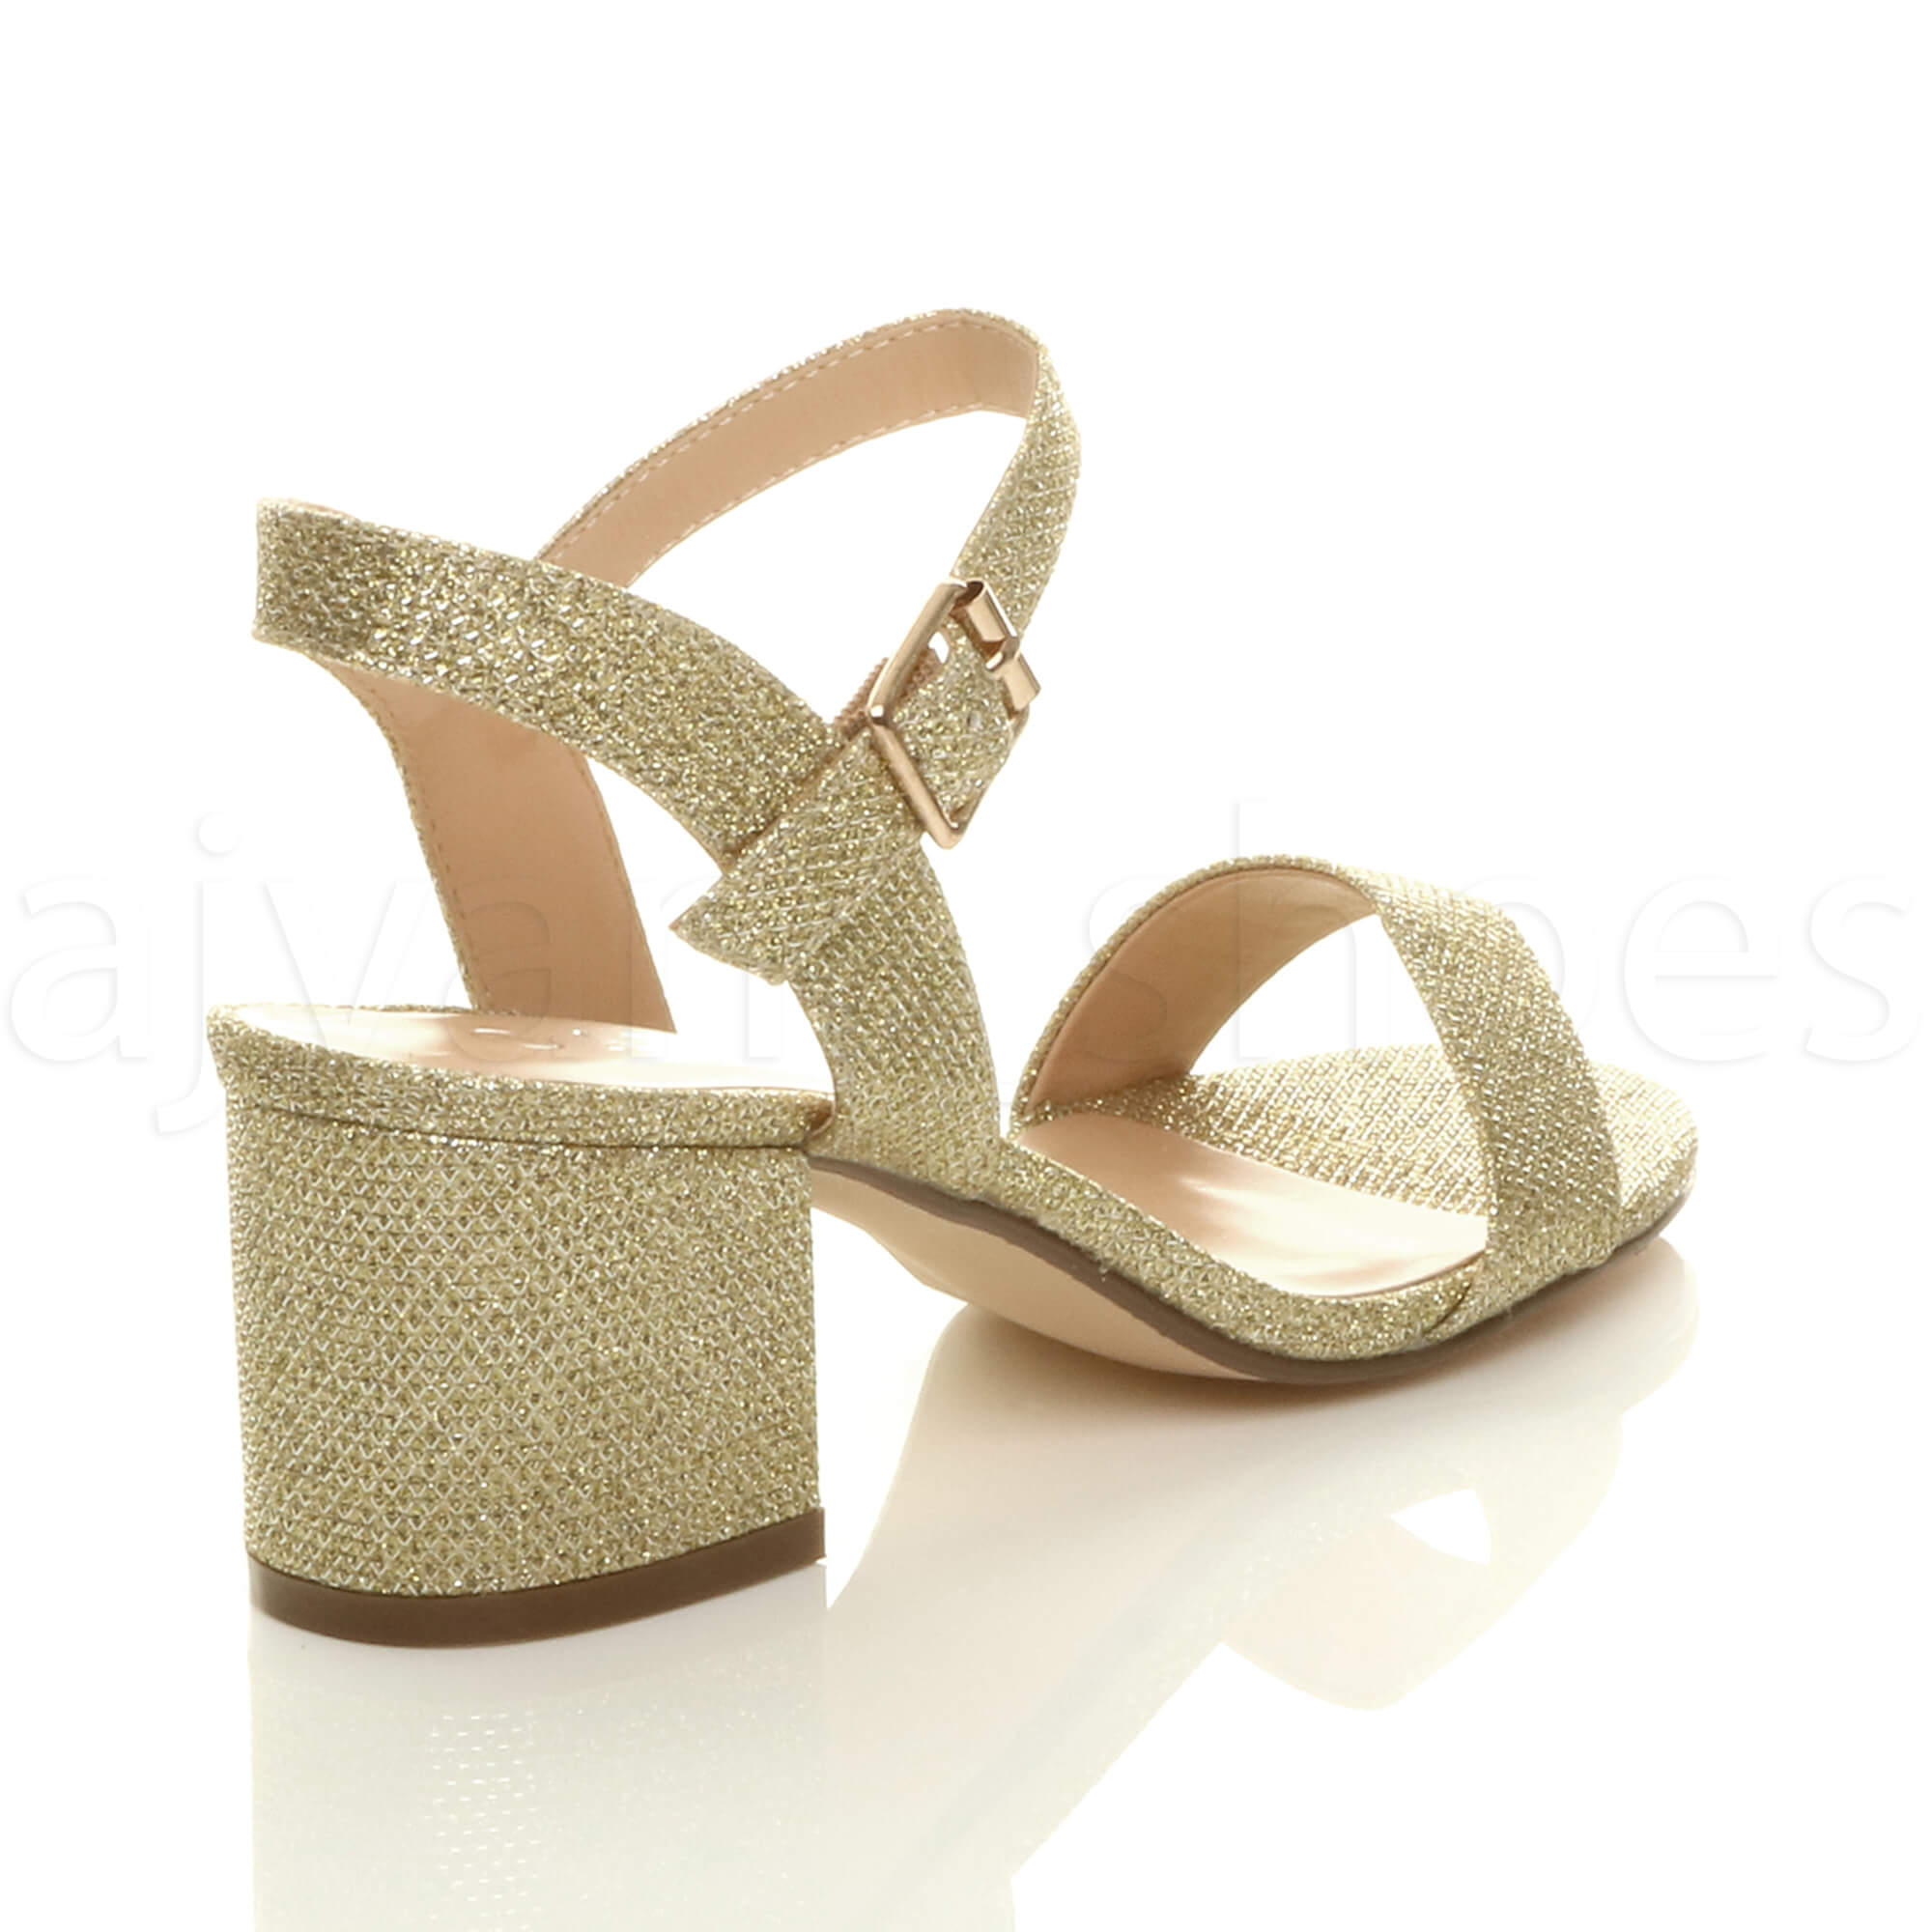 WOMENS-LADIES-MID-LOW-BLOCK-HEEL-PEEP-TOE-ANKLE-STRAP-STRAPPY-PARTY-SANDALS-SIZE thumbnail 53